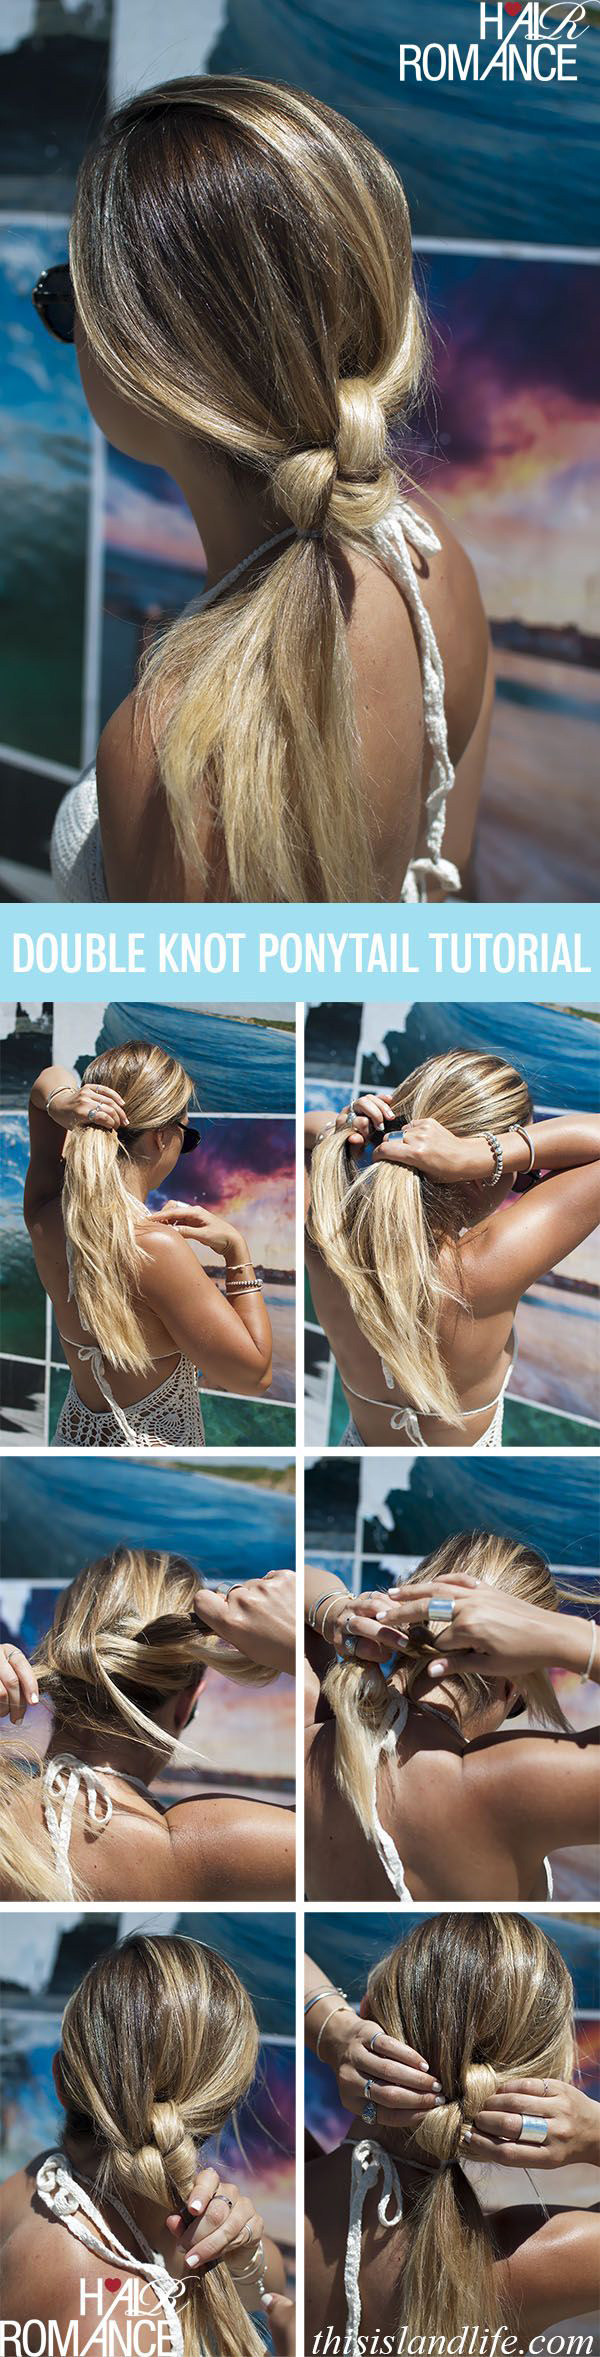 The double knotted pony is an even more interesting variation.